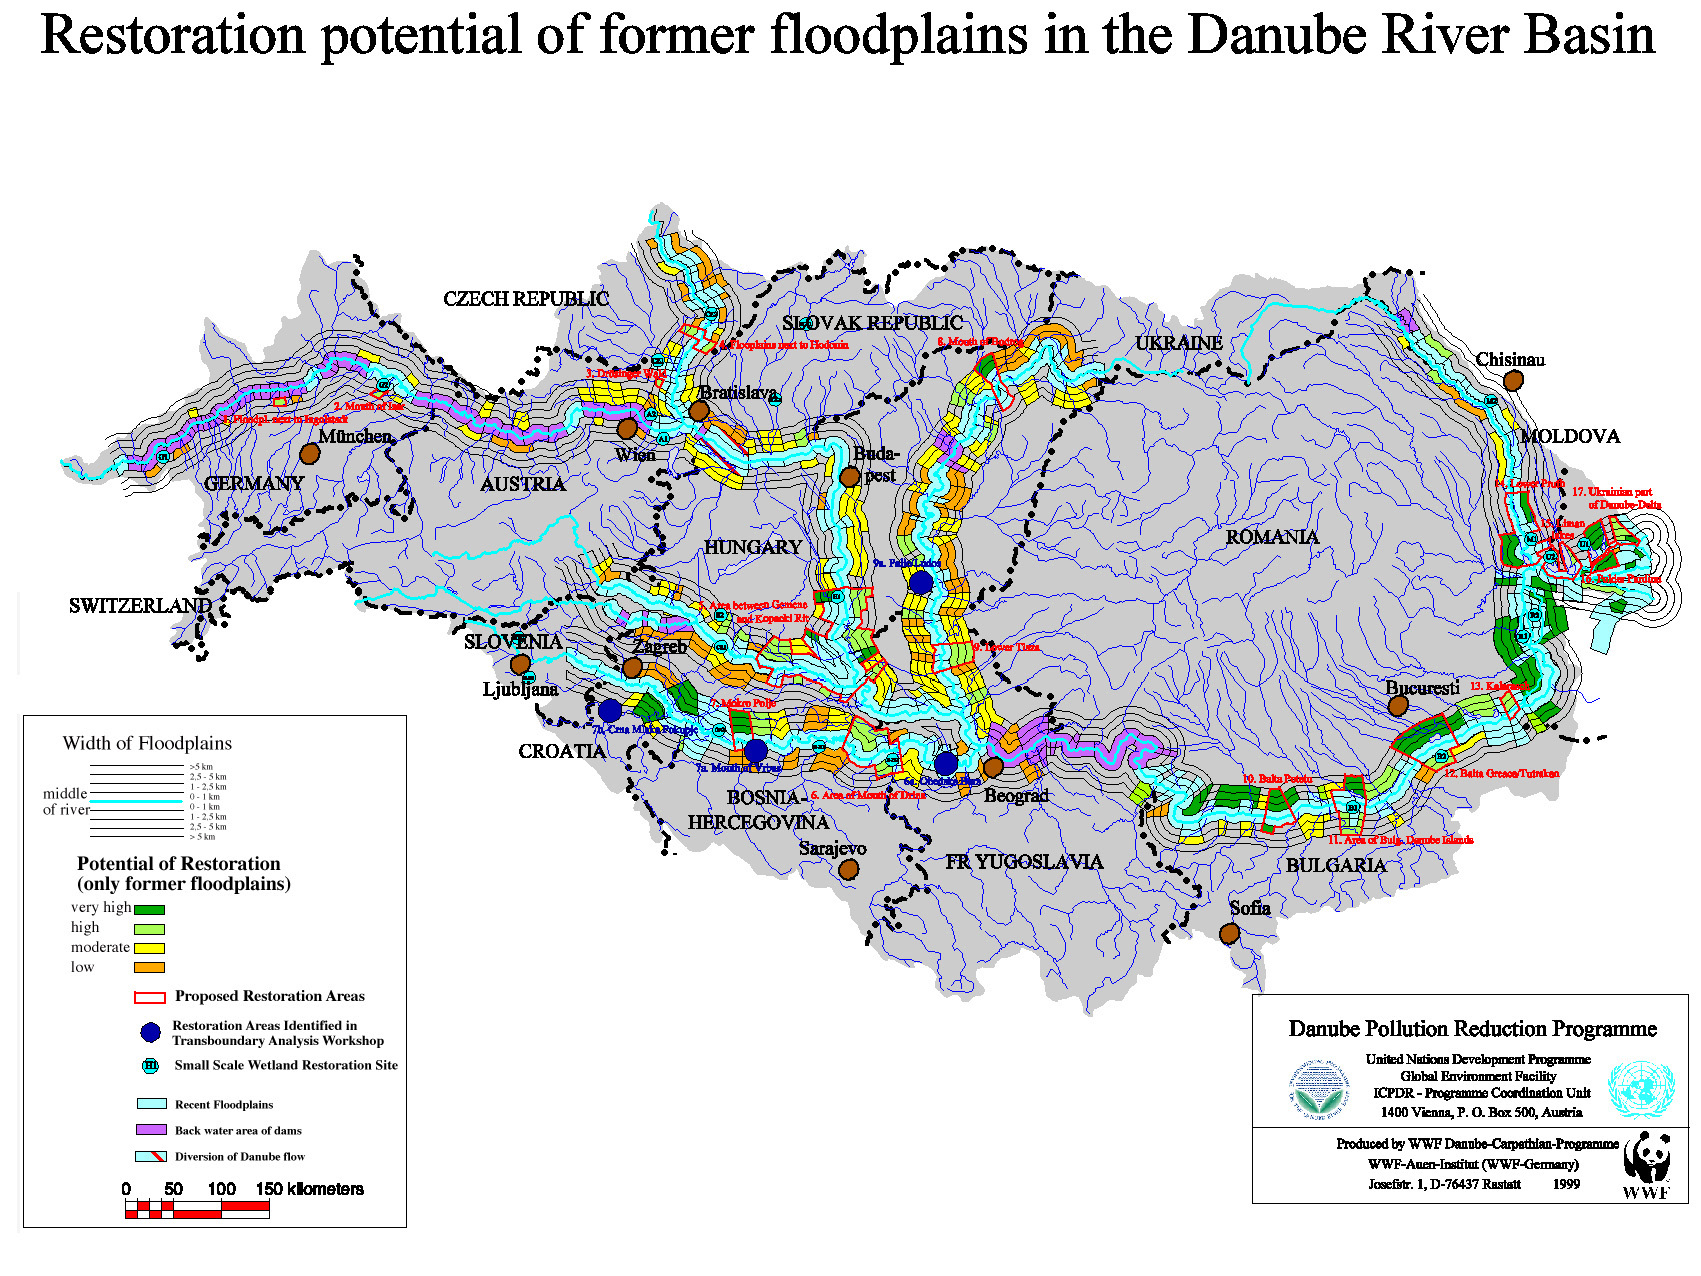 Danube Pollution Reduction Programme | ICPDR - International ... on greece on map, po river on map, thames river on map, yangtze river on map, elbe river on map, english channel on map, amazon river on map, alps on map, oder river on map, tigris river on map, euphrates river on map, don river on map, dnieper river on map, mosel river on map, ganges river on map, caspian sea on map, rhone river on map, strait of gibraltar on map, seine river on map, indus river on map,